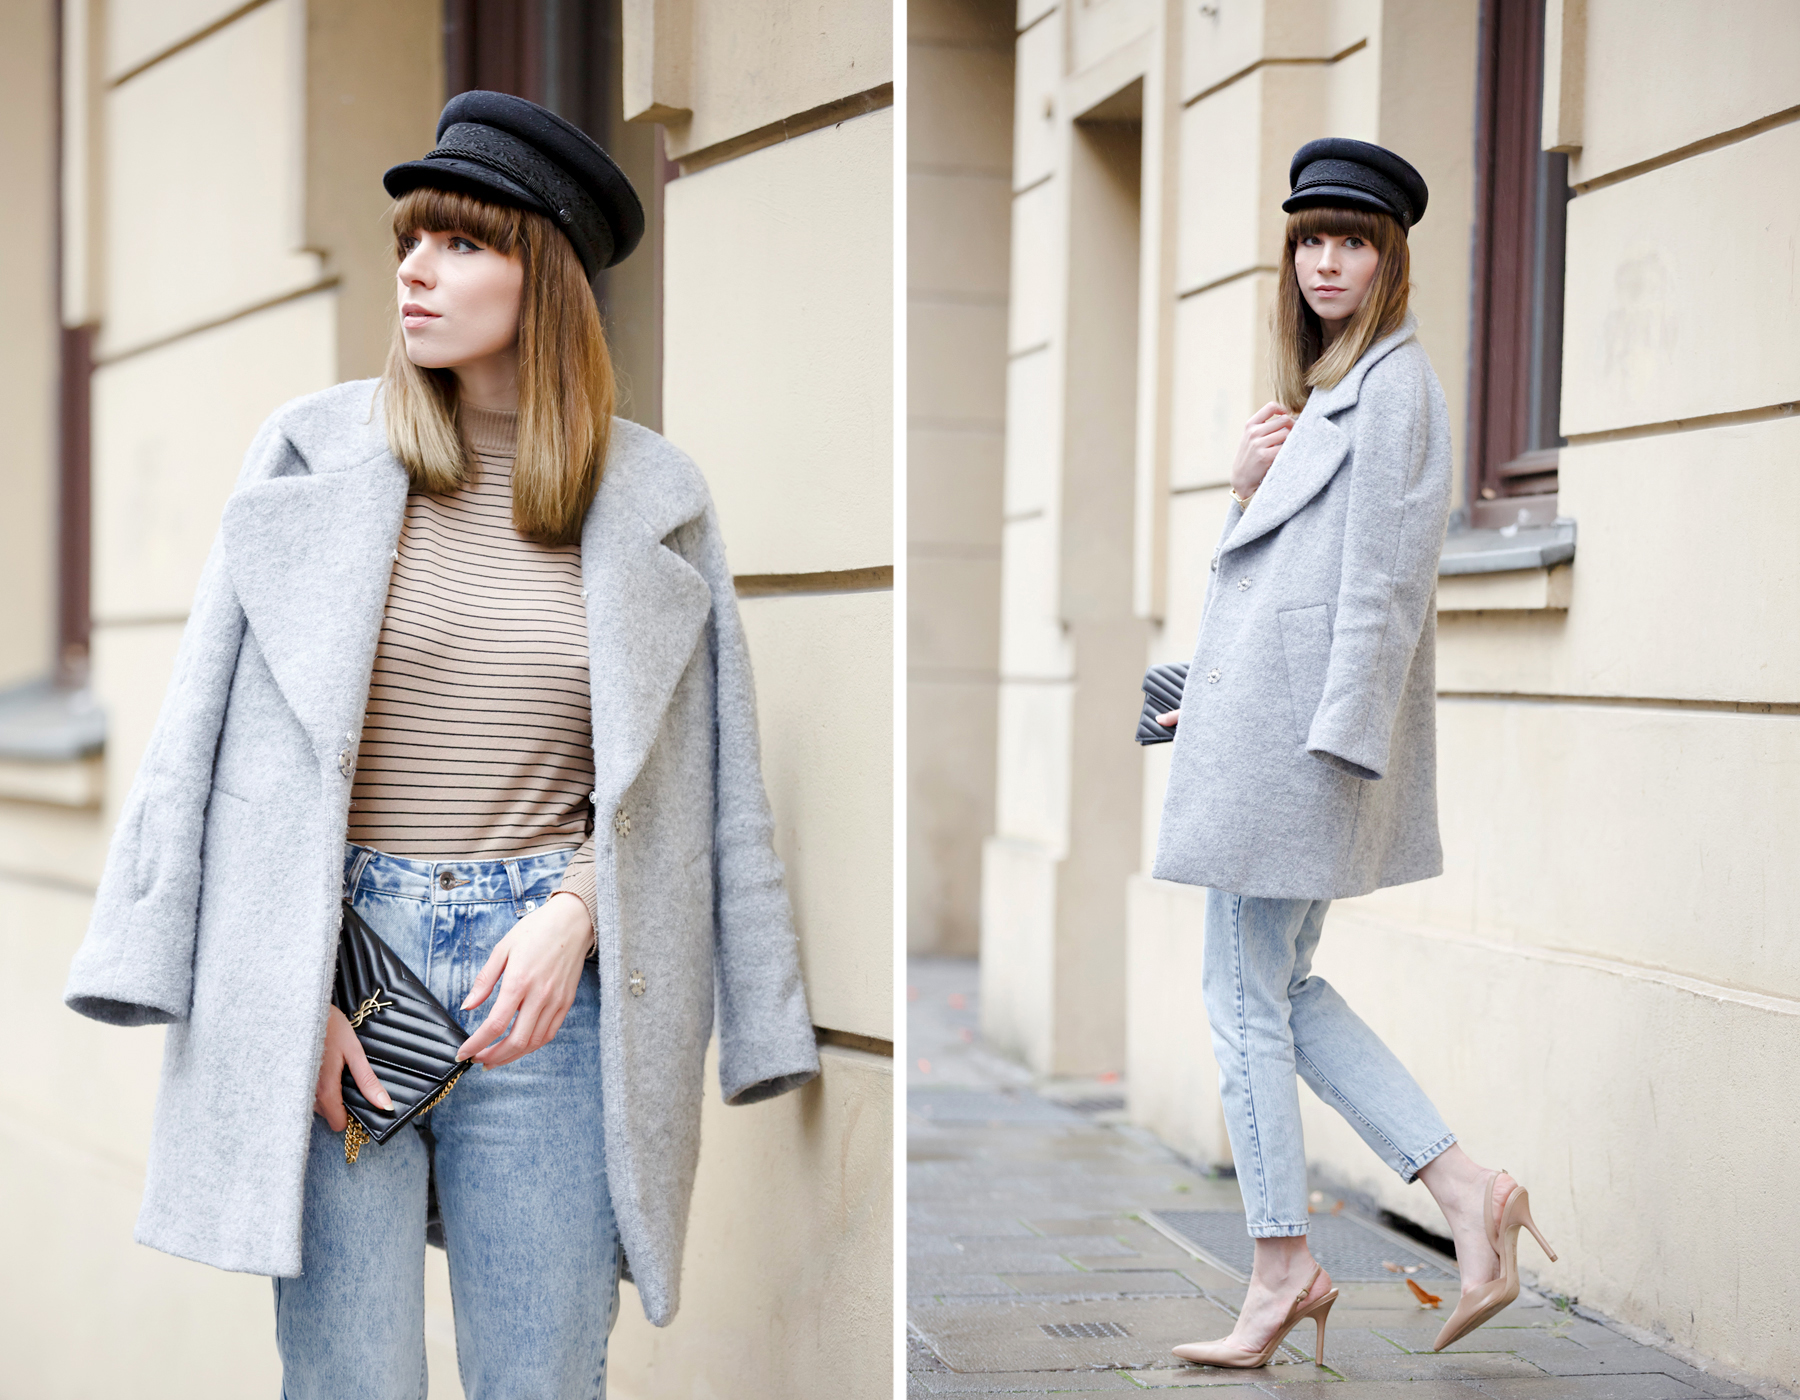 ootd outfit beige nude parisian parisienne mom jeans grey coat winter style spring hat cute girl love sam edelman edited the label pull & bear styleblogger cats & dogs wie hund und katze ricarda schernus blogger dusseldorf berlin 1